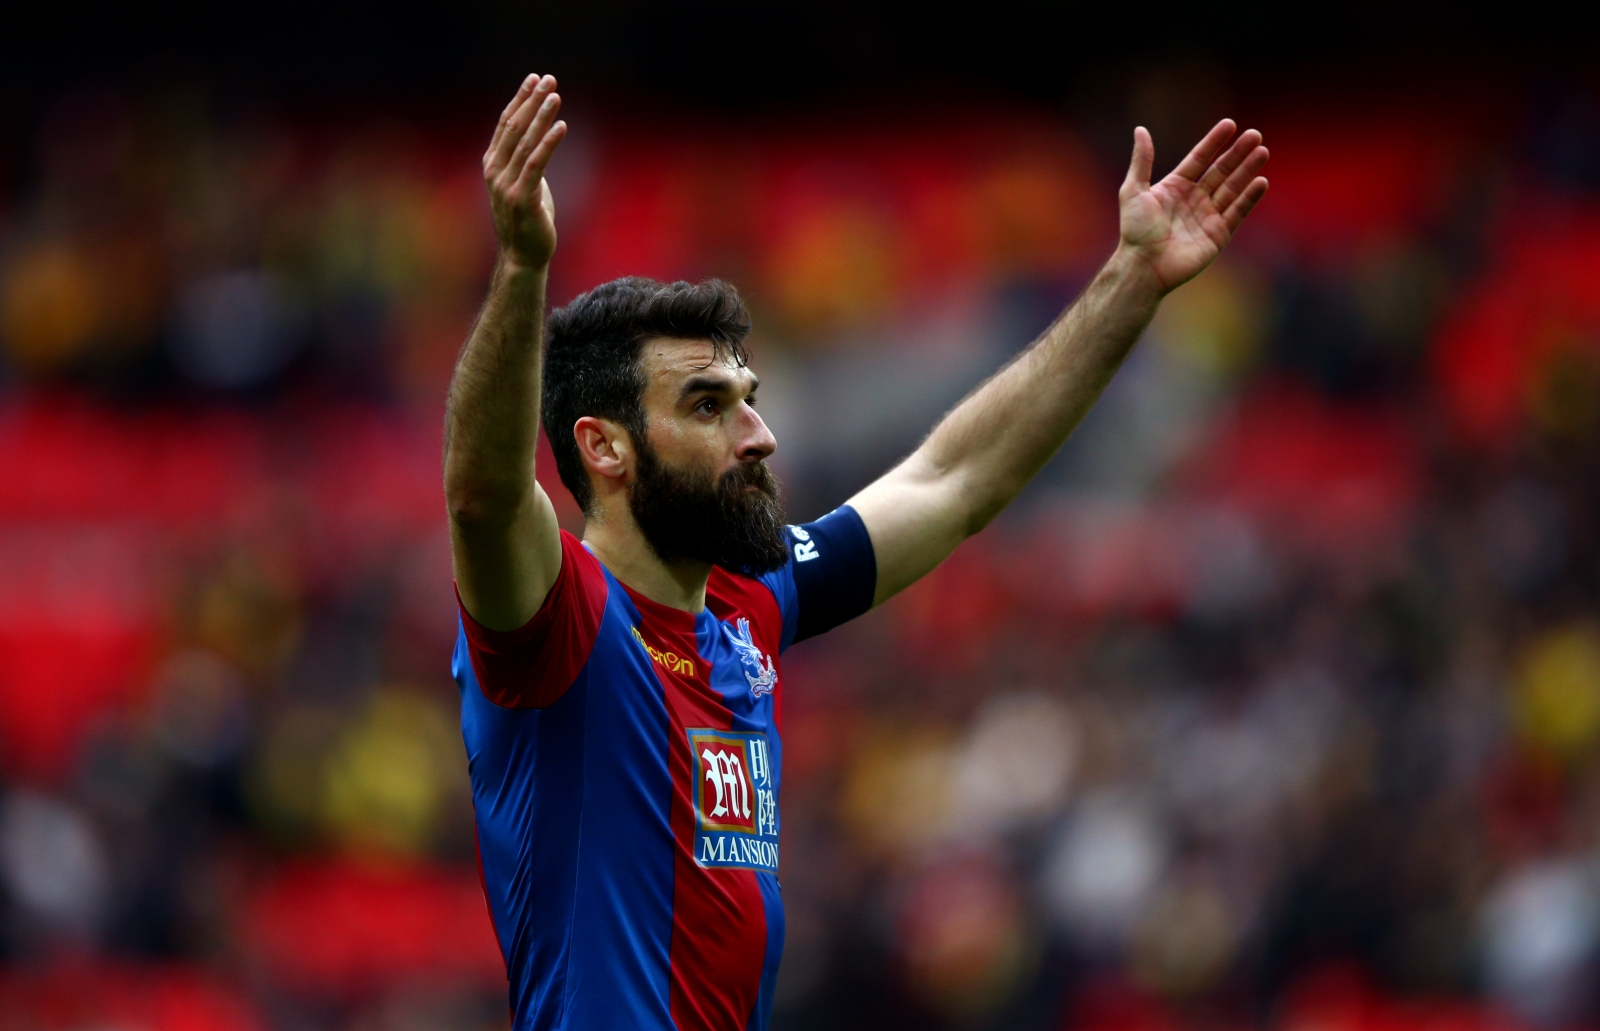 Crystal Palace v Manchester United: Mile Jedinak takes inspiration from Leicester City ahead of FA Cup final